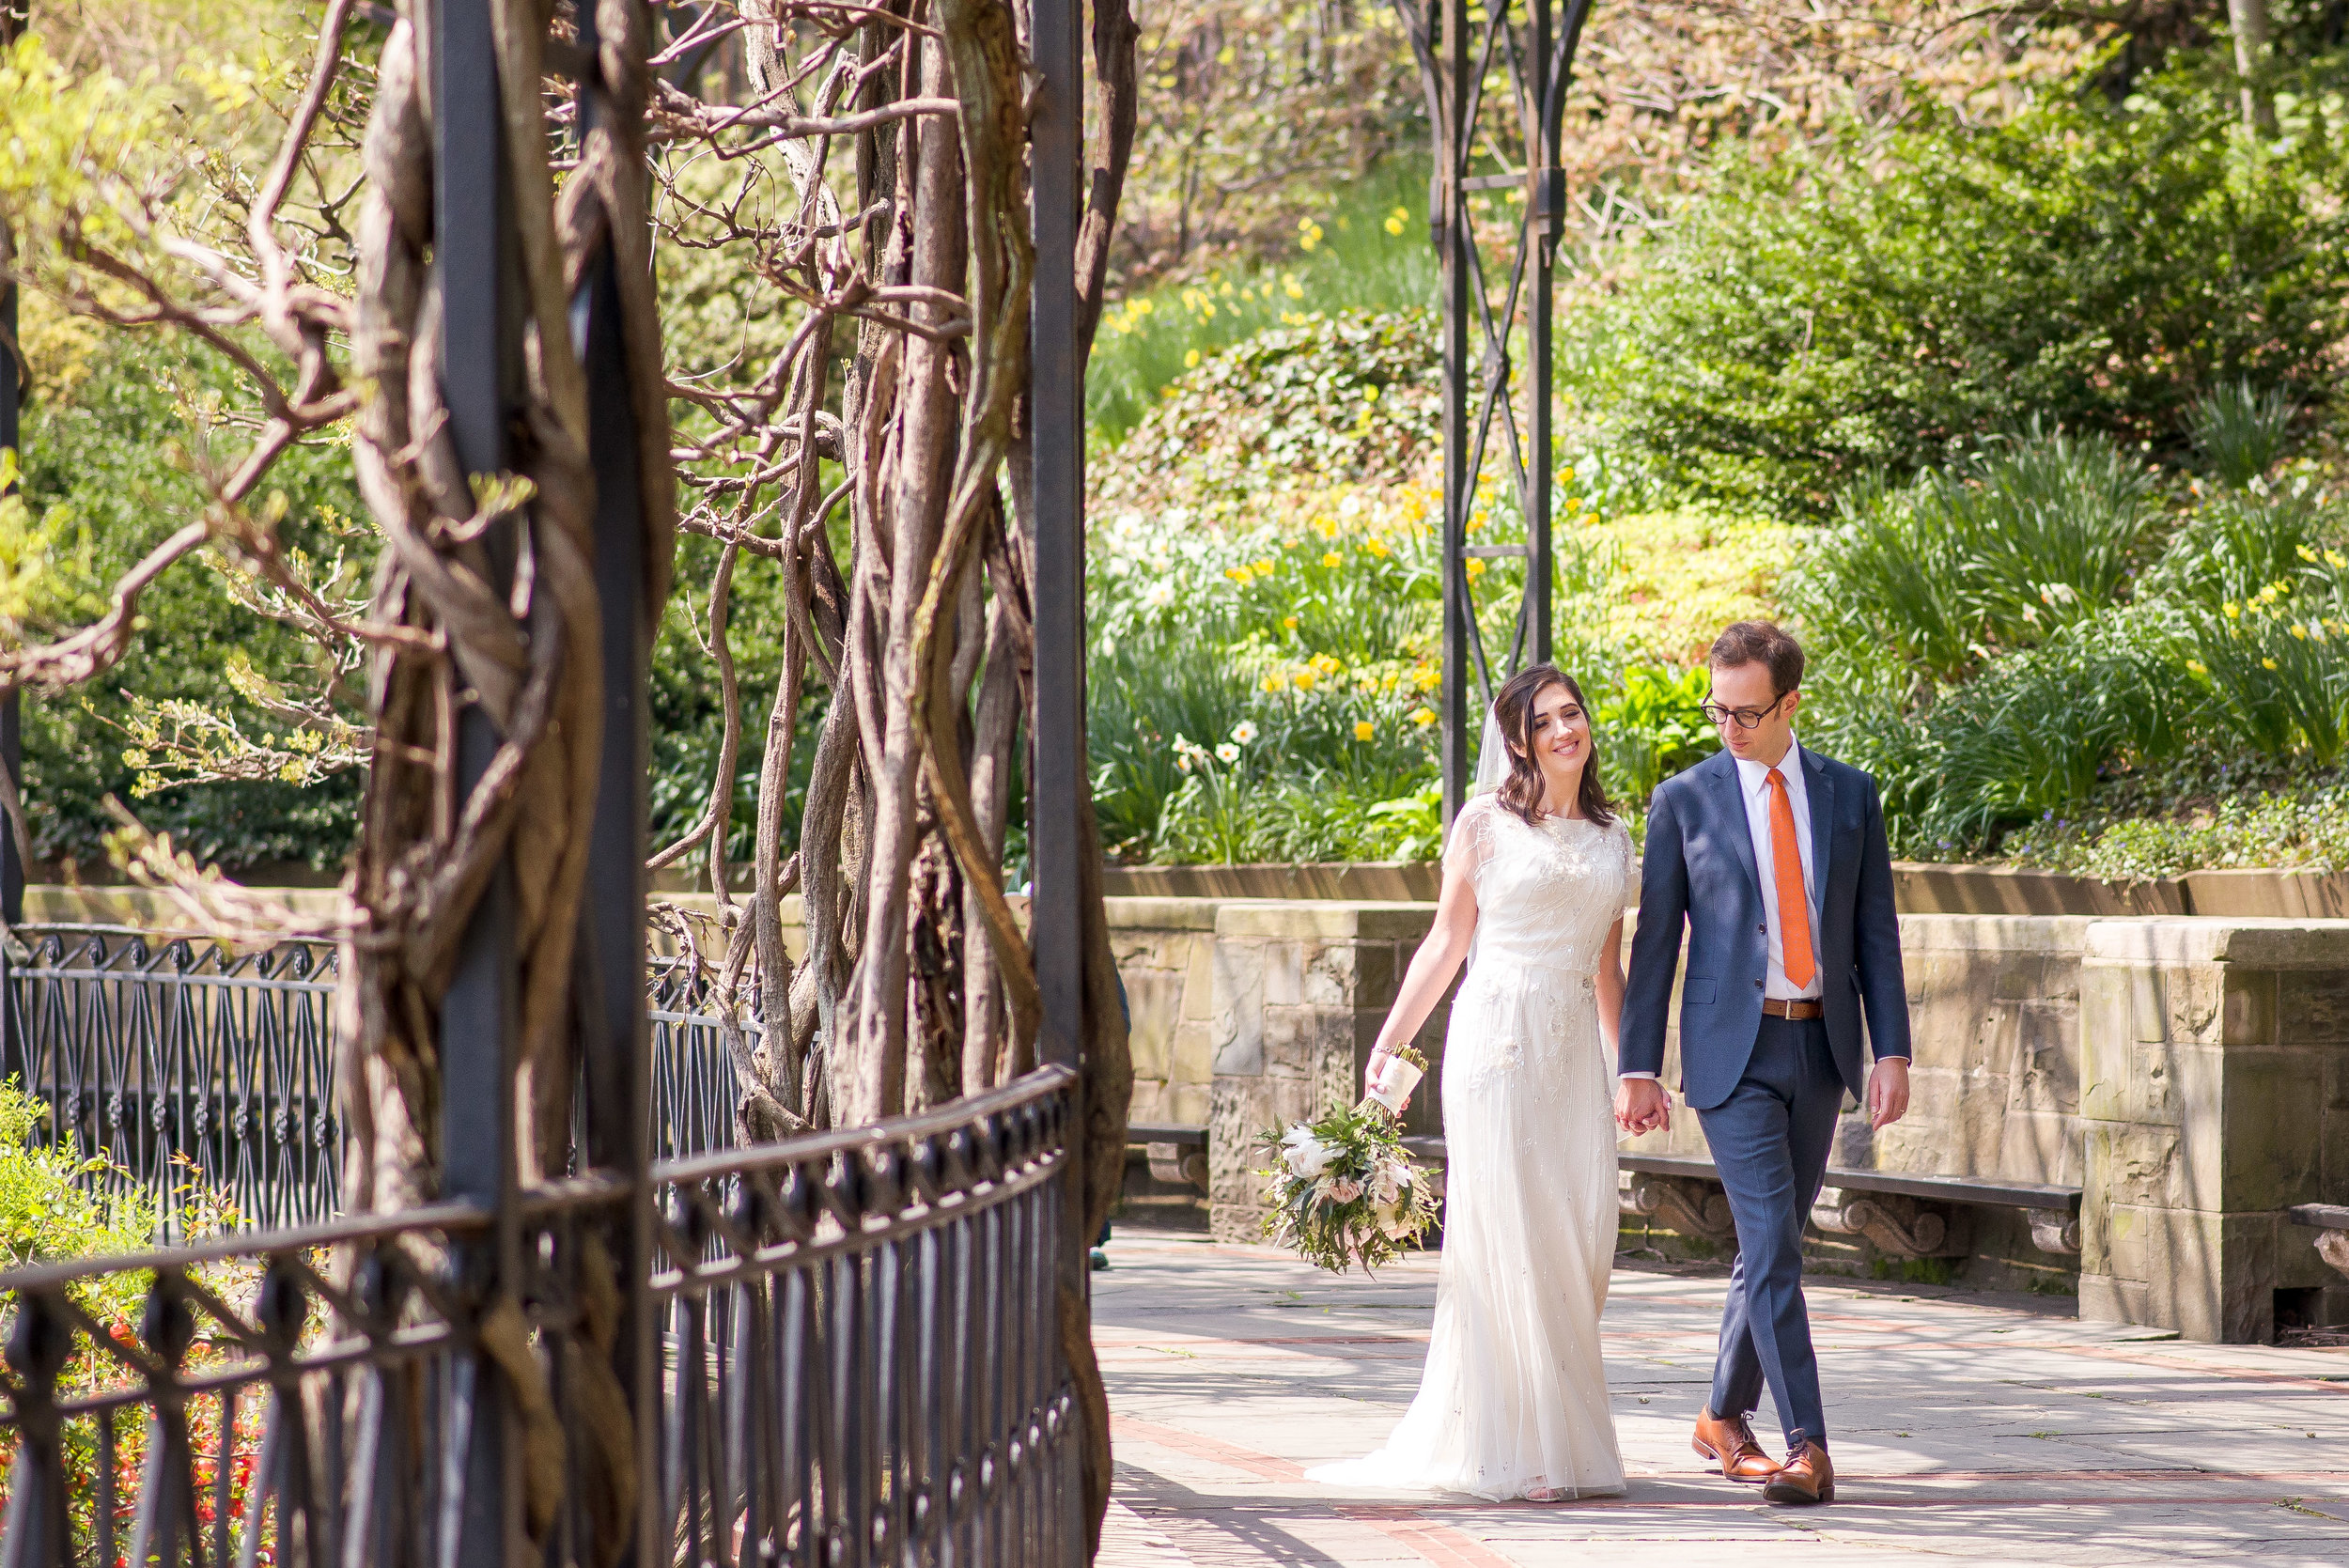 Conservatory Garden Wedding Portrait.jpg